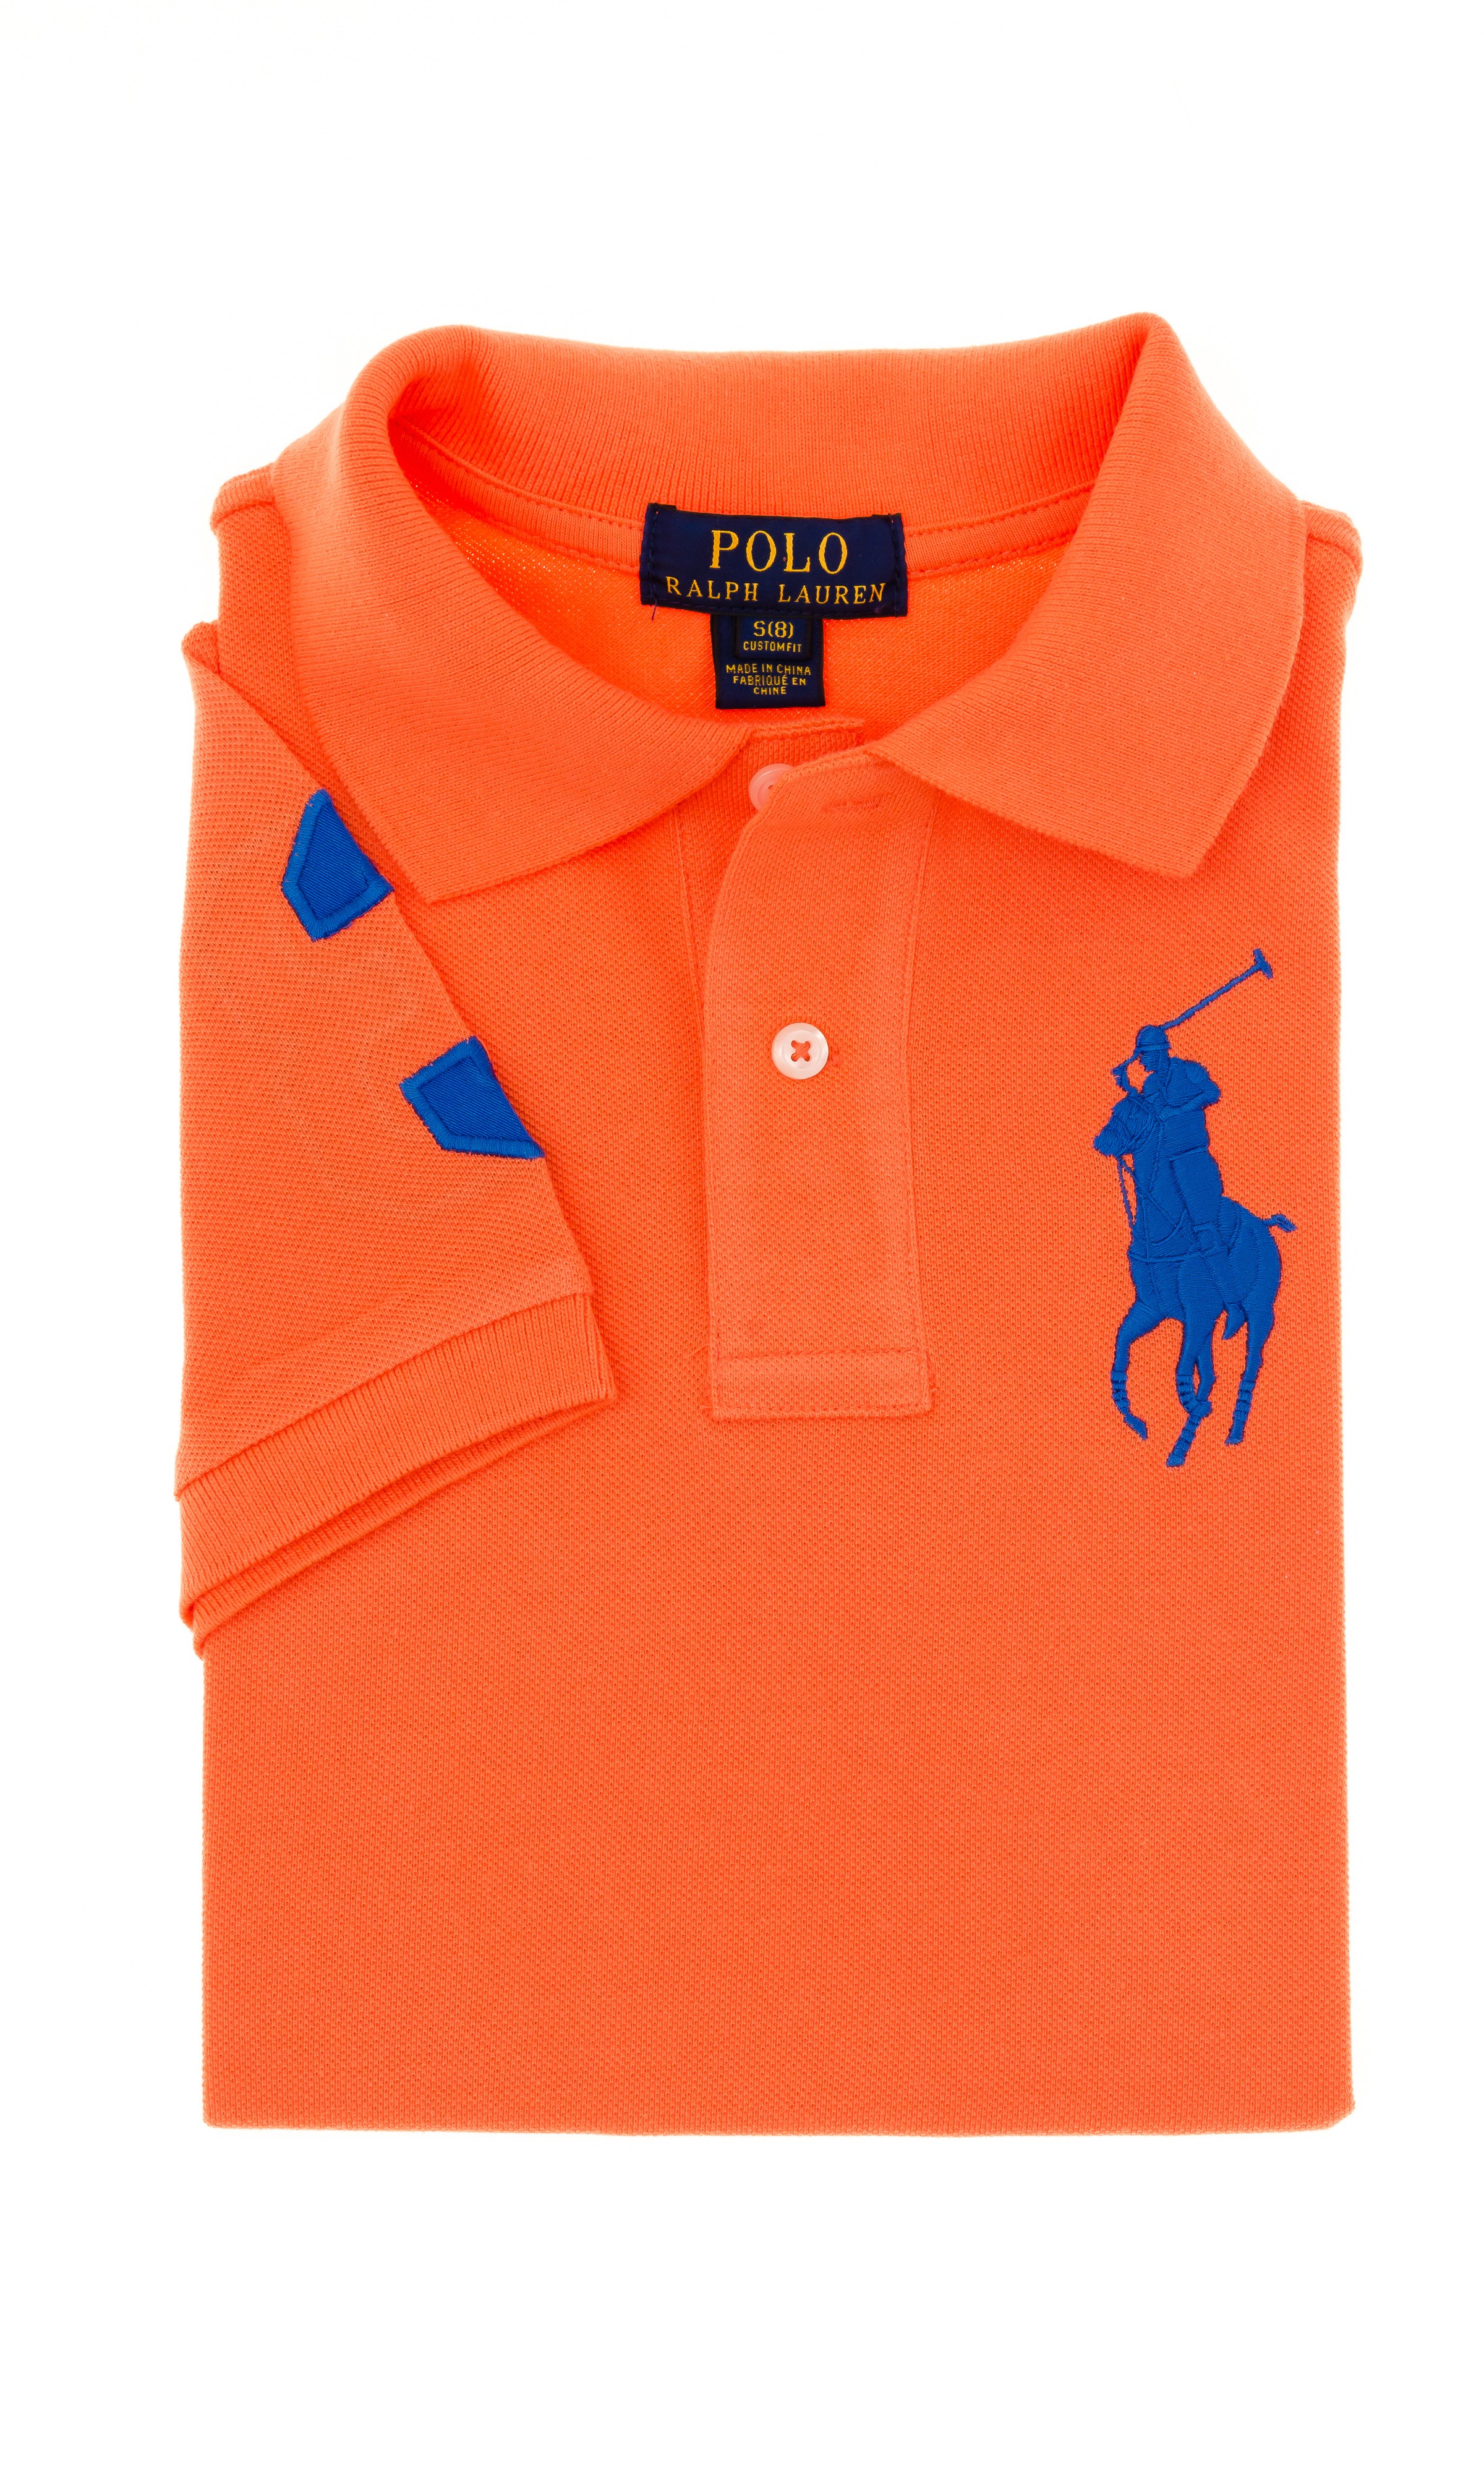 Boy ShirtRalph Orange Lauren Celebrity Polo Club TFKJc13l